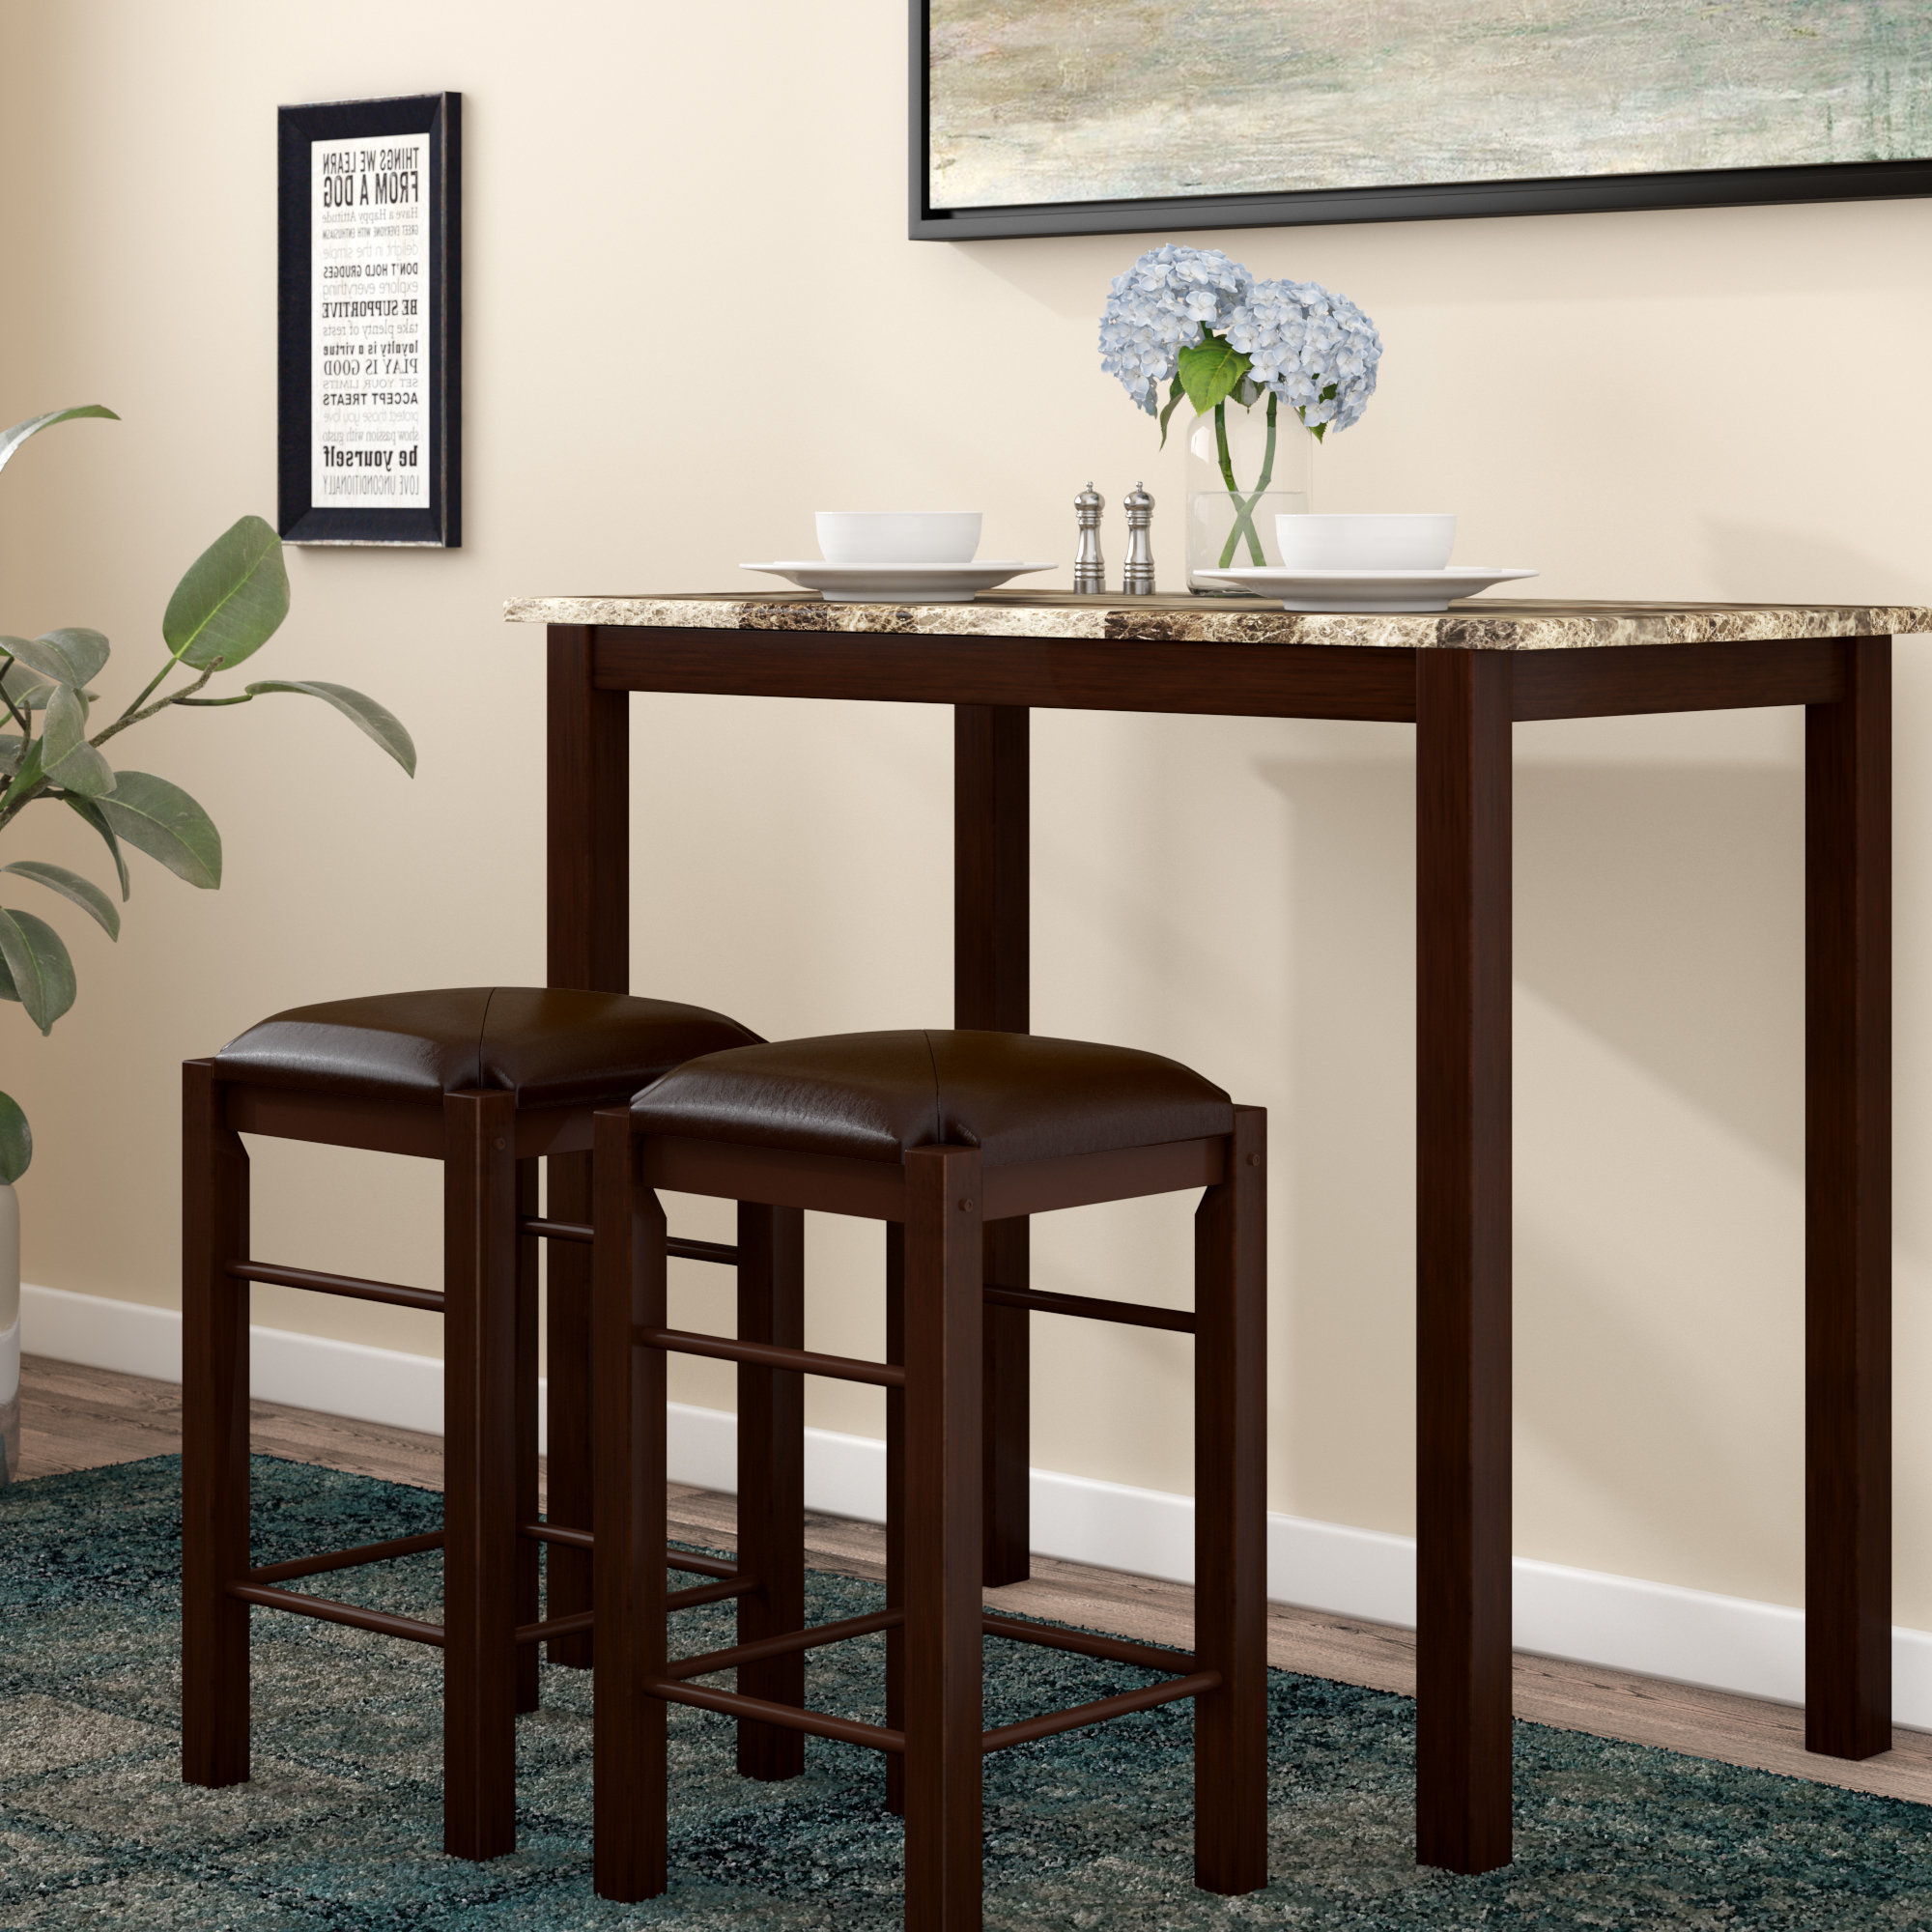 Lillard 3 Piece Breakfast Nook Dining Sets Intended For Popular Penelope 3 Piece Counter Height Wood Dining Set (View 8 of 20)